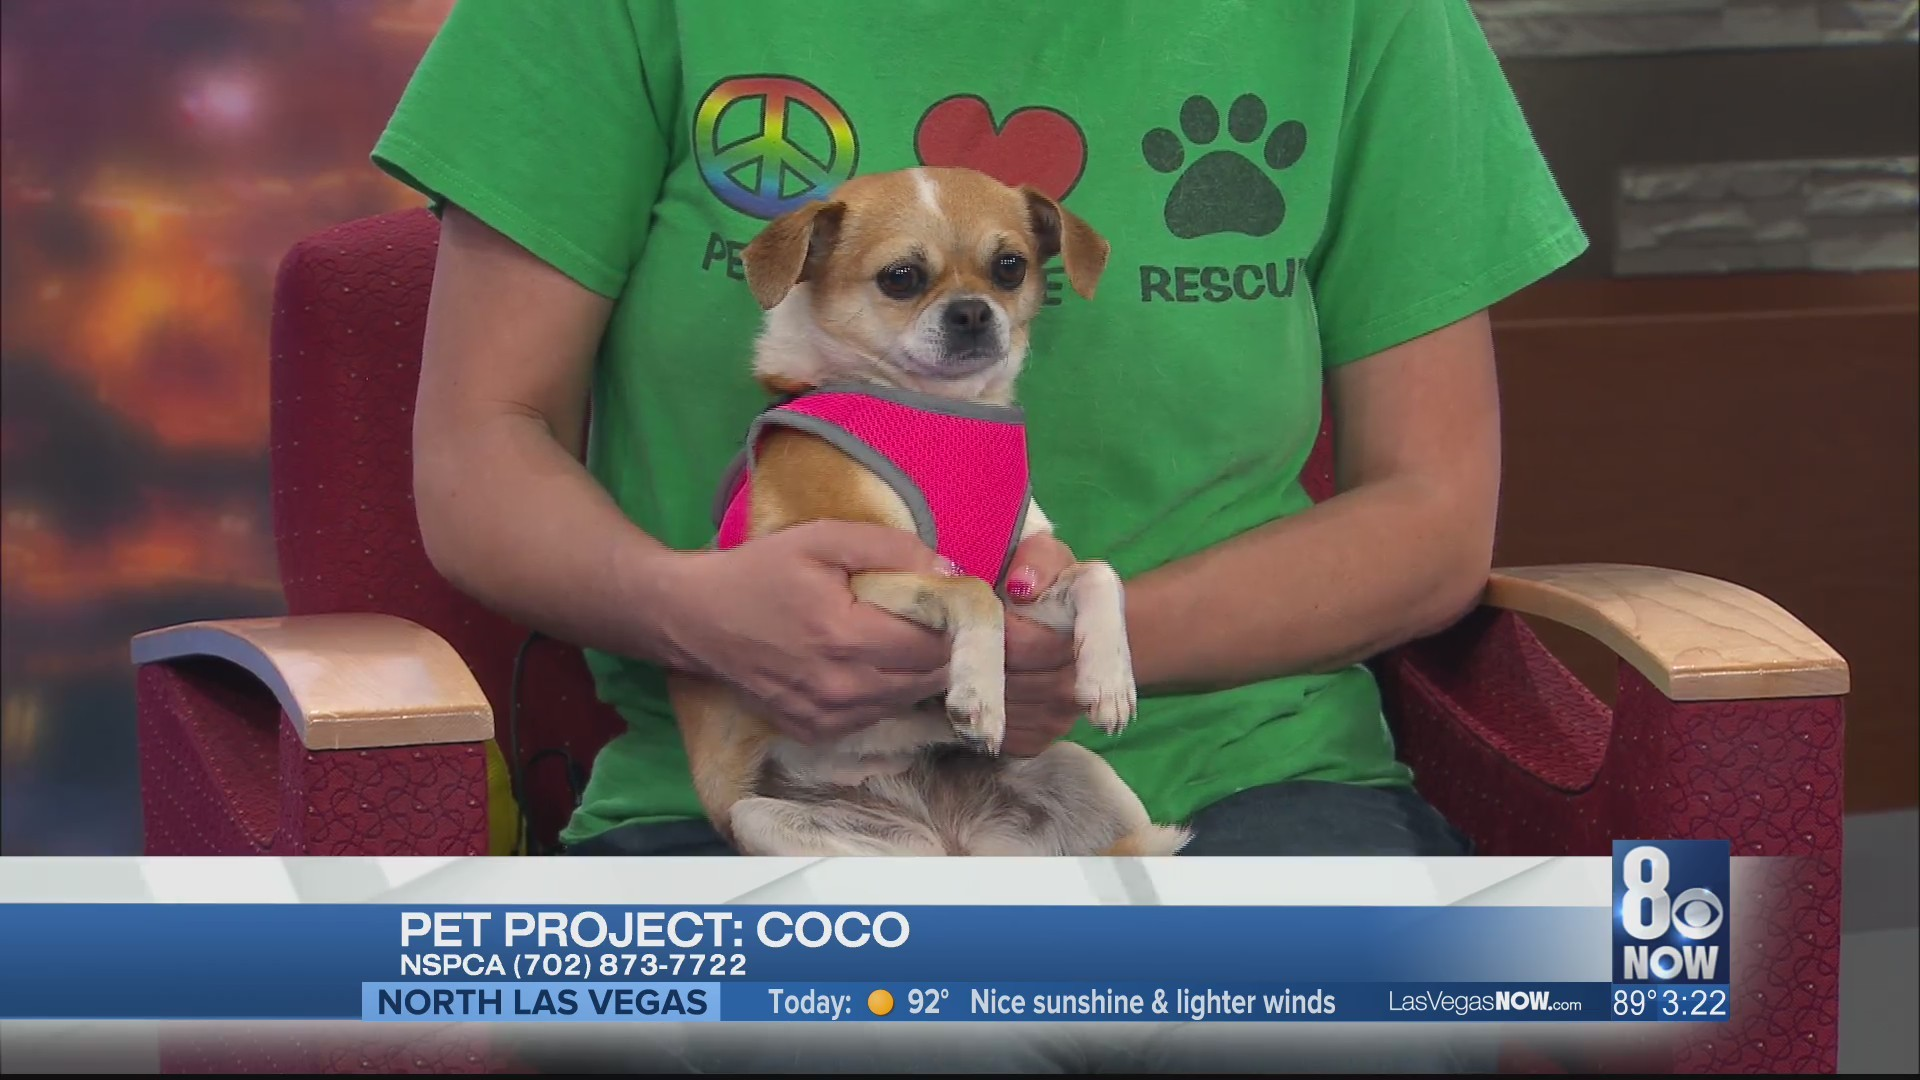 Coco the dog is looking for a forever home